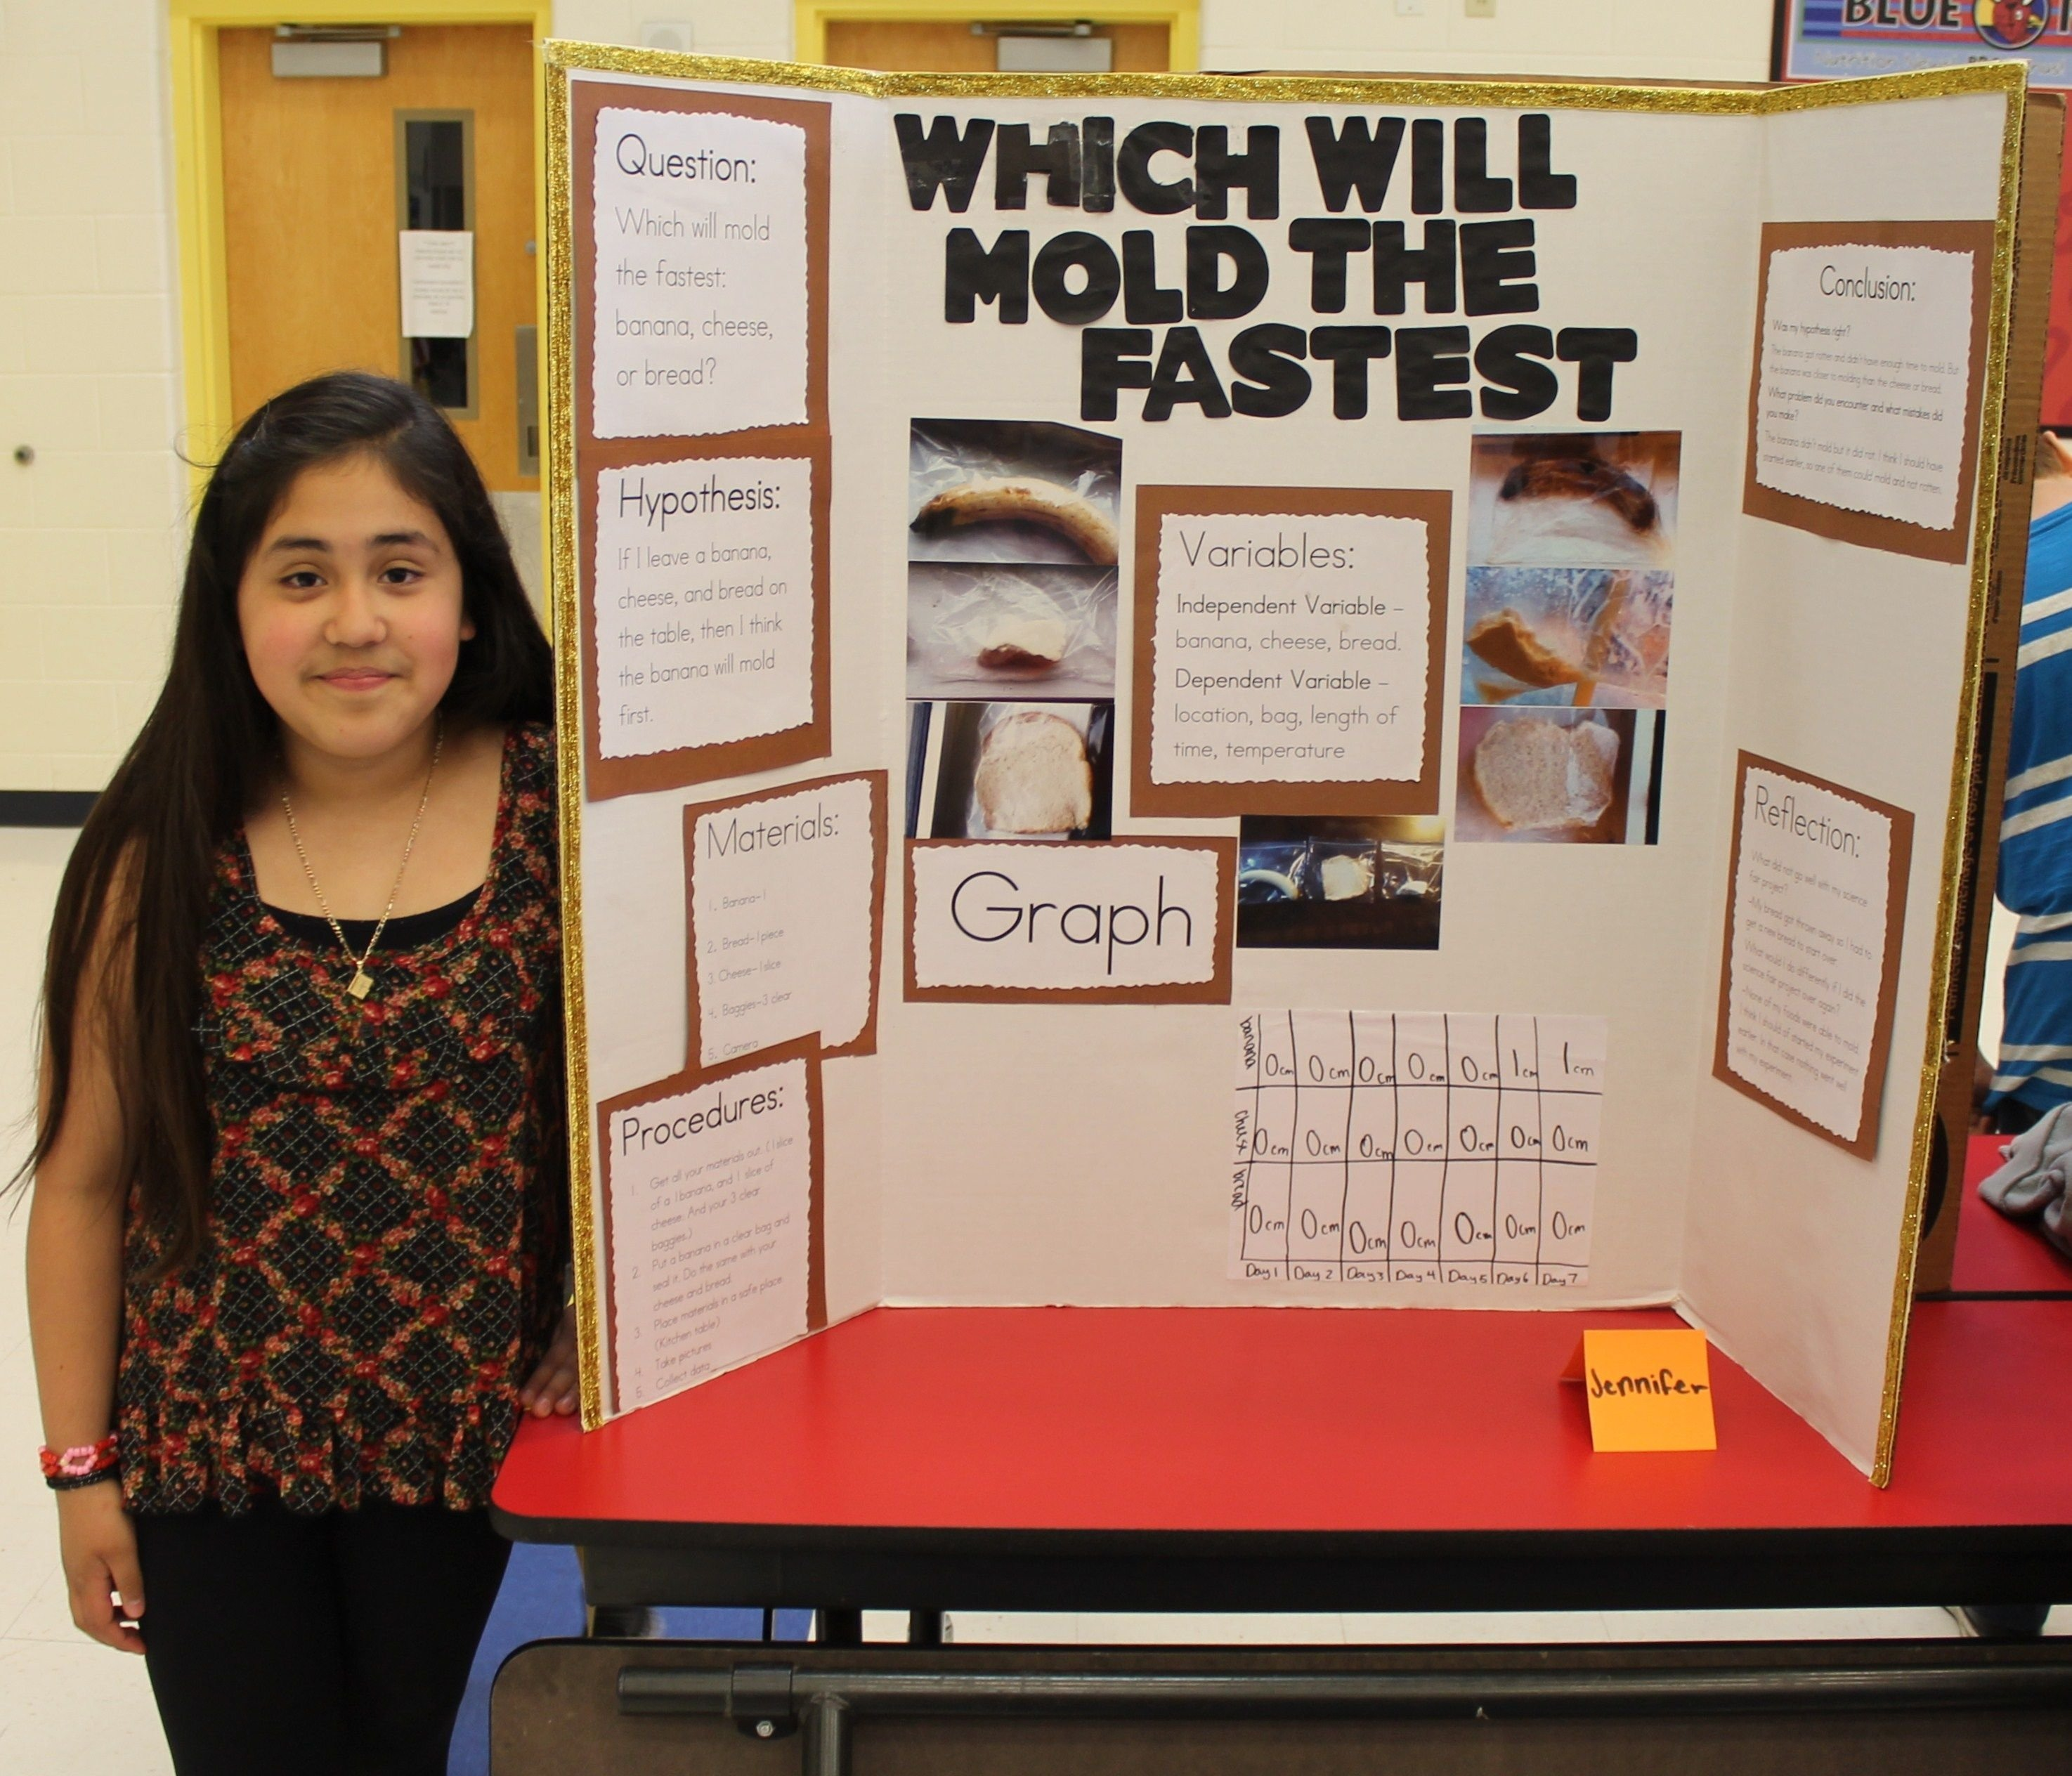 10 Most Popular Science Fair Projects Ideas For 3Rd Grade easy science fair projects for 3rd grade idea google search 1 2020